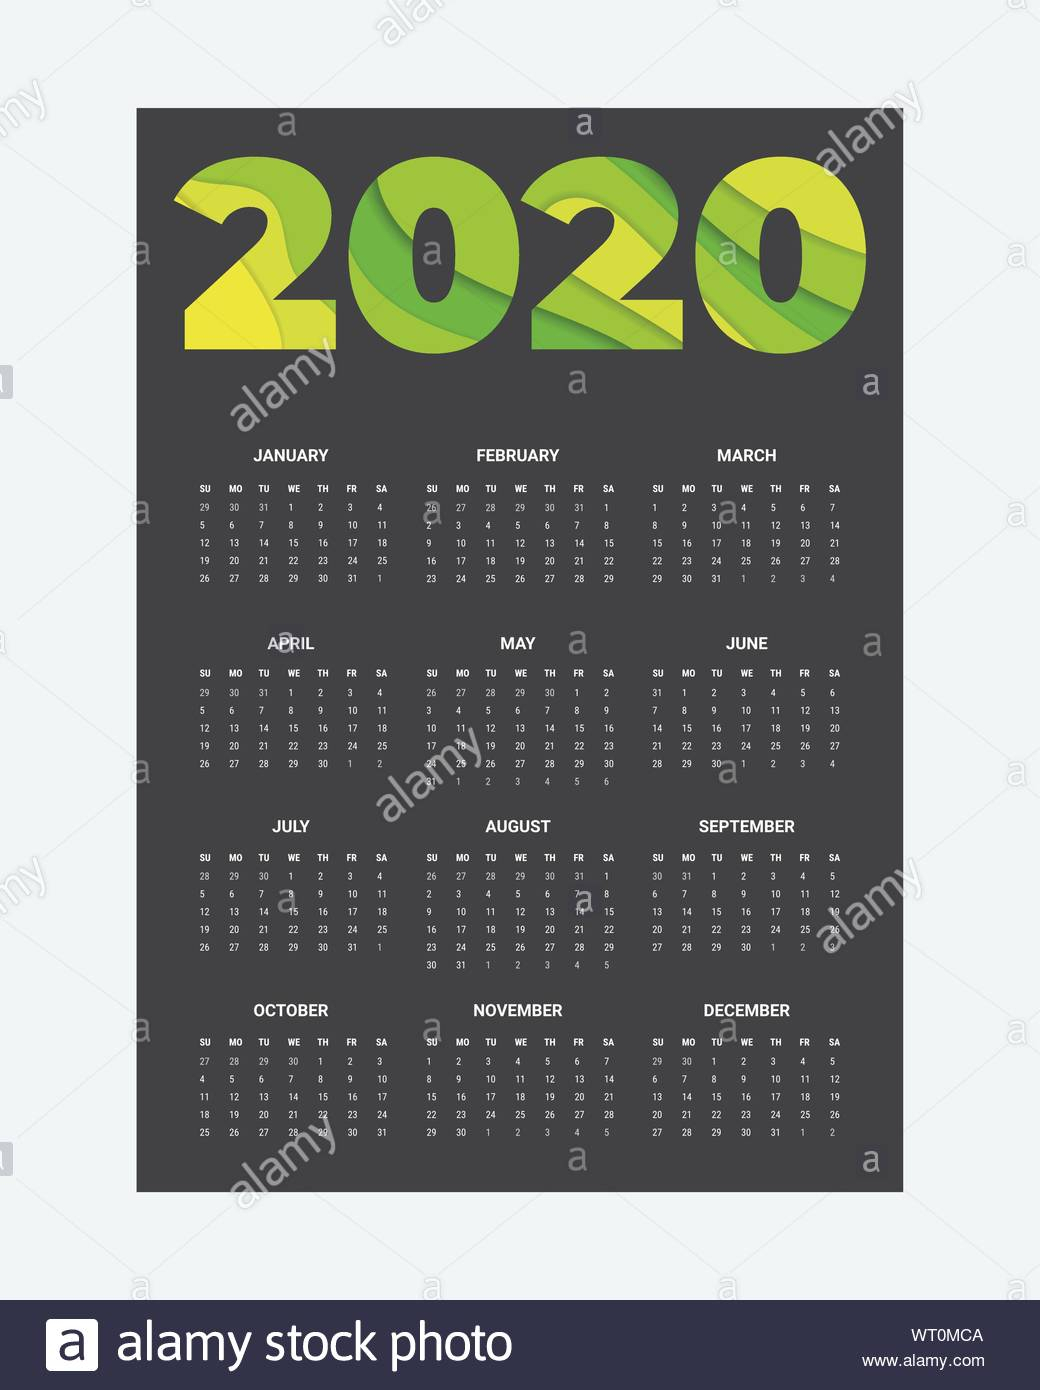 2020 Calendar - Illustration. Template. Mock Up Week Starts